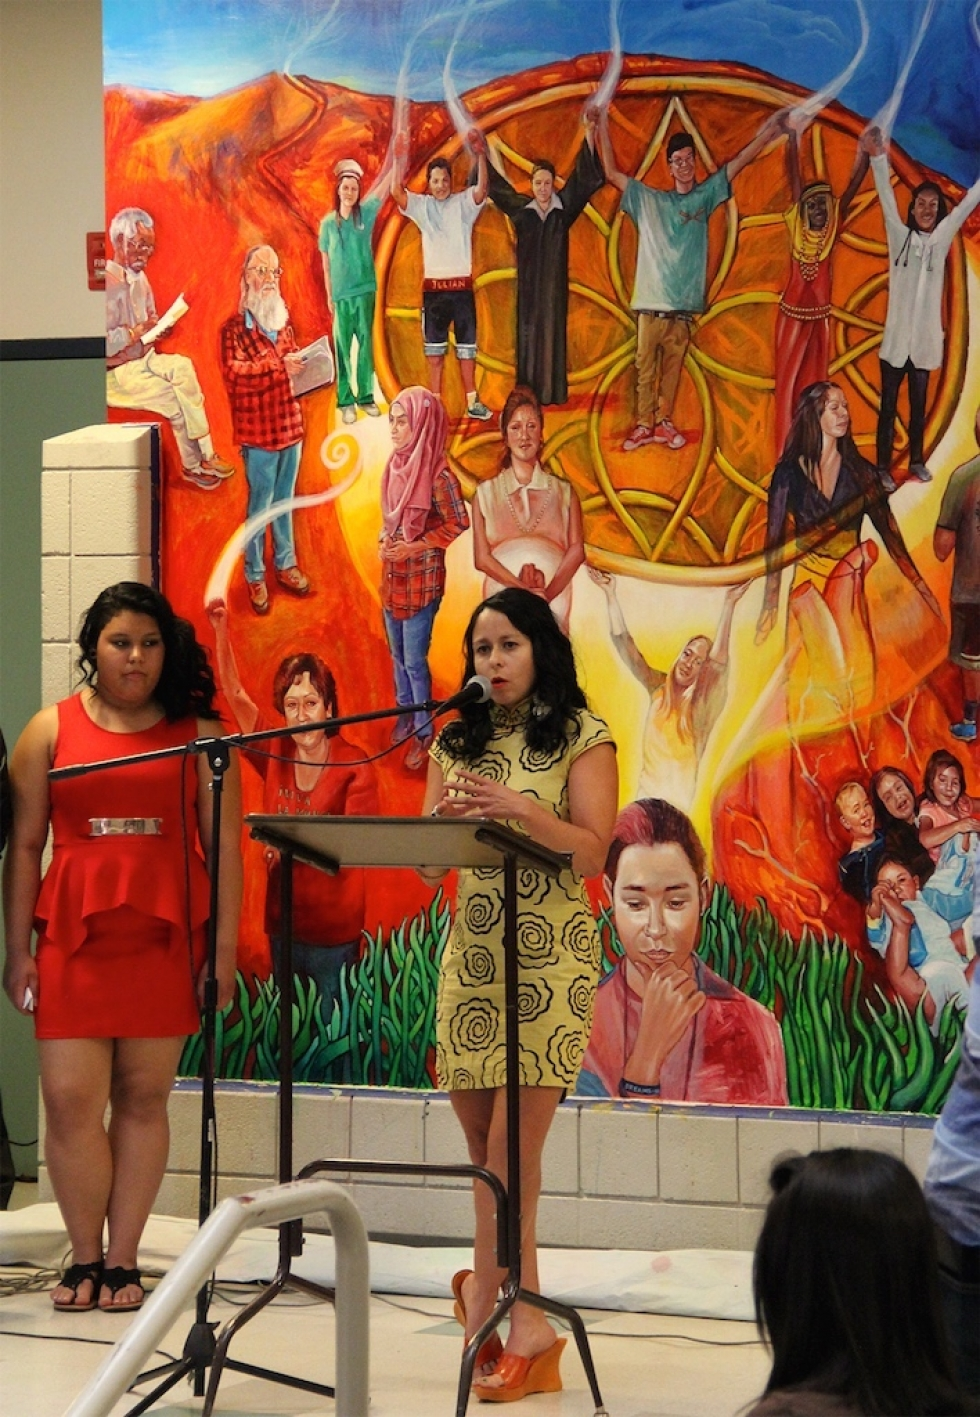 """Ruby Chacon, a product of the west side and proud alumnist of Horizonte School, speaks at the unveiling of """"Pursuit of Dream(ers),"""" her latest mural on Horizonte's second floor. The artwork features portraits of past, but mostly present students. Twenty people were involved in the making of the mural."""